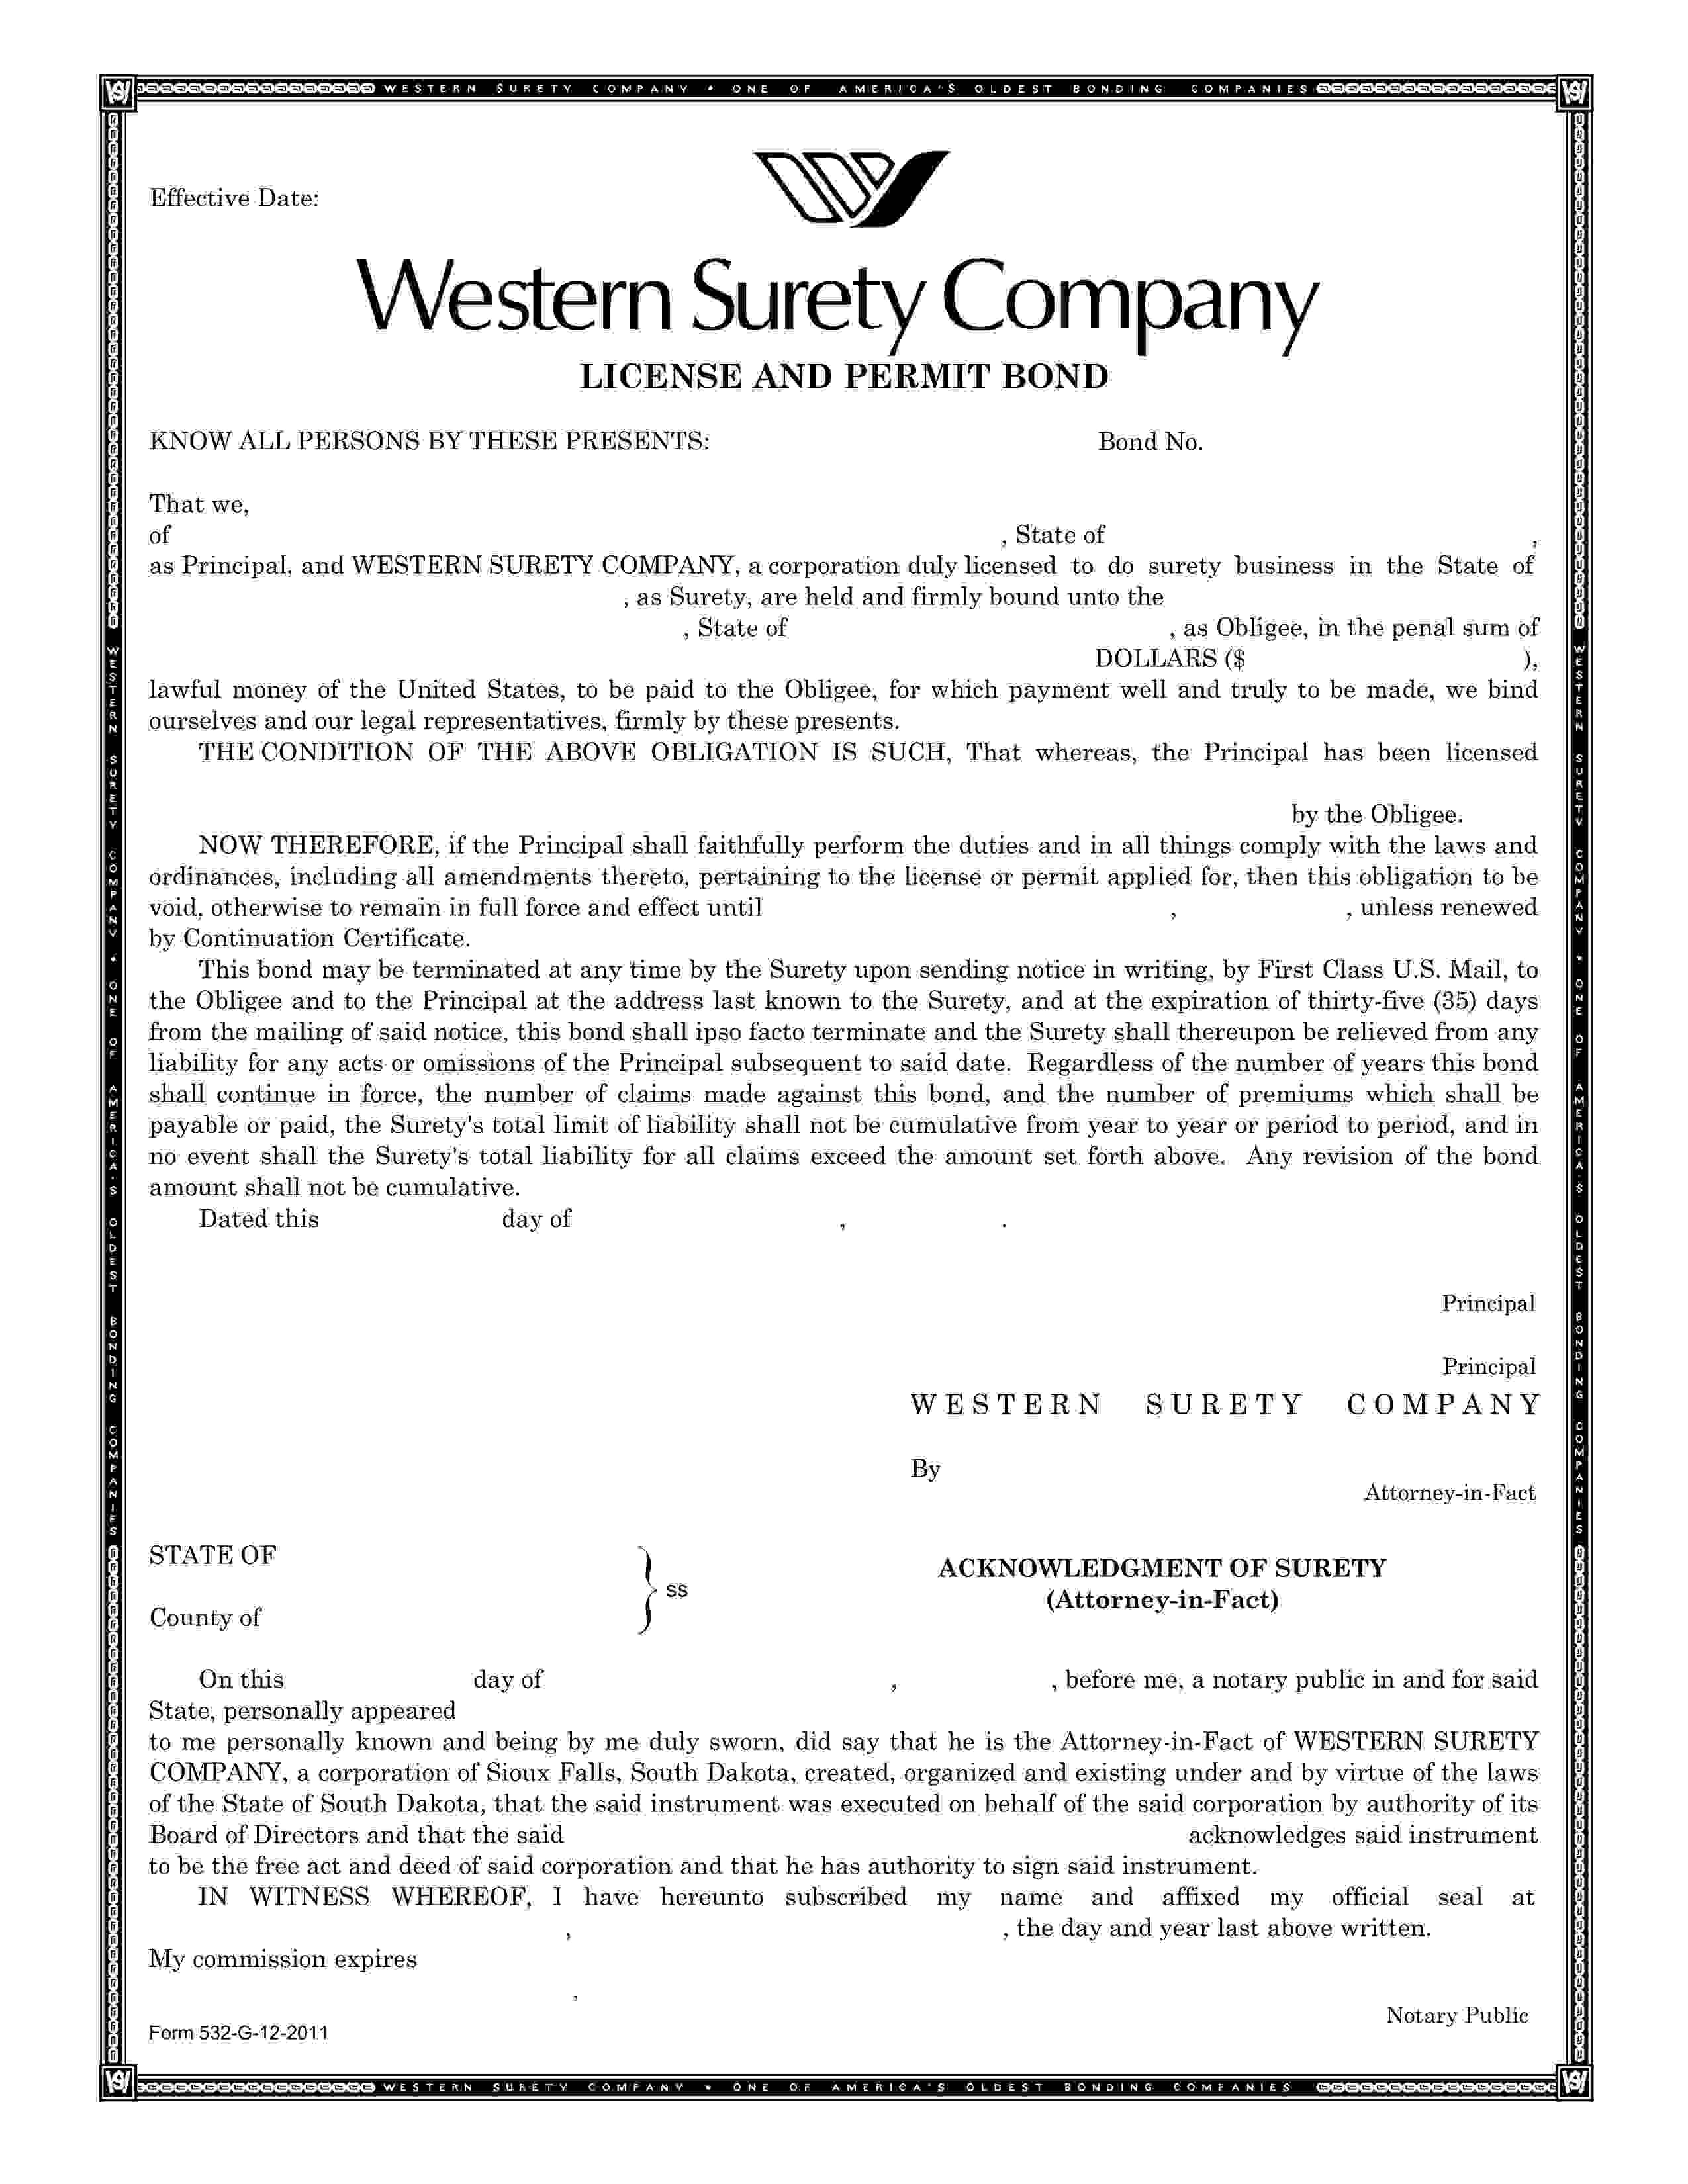 City of Muncie Contractor's License sample image